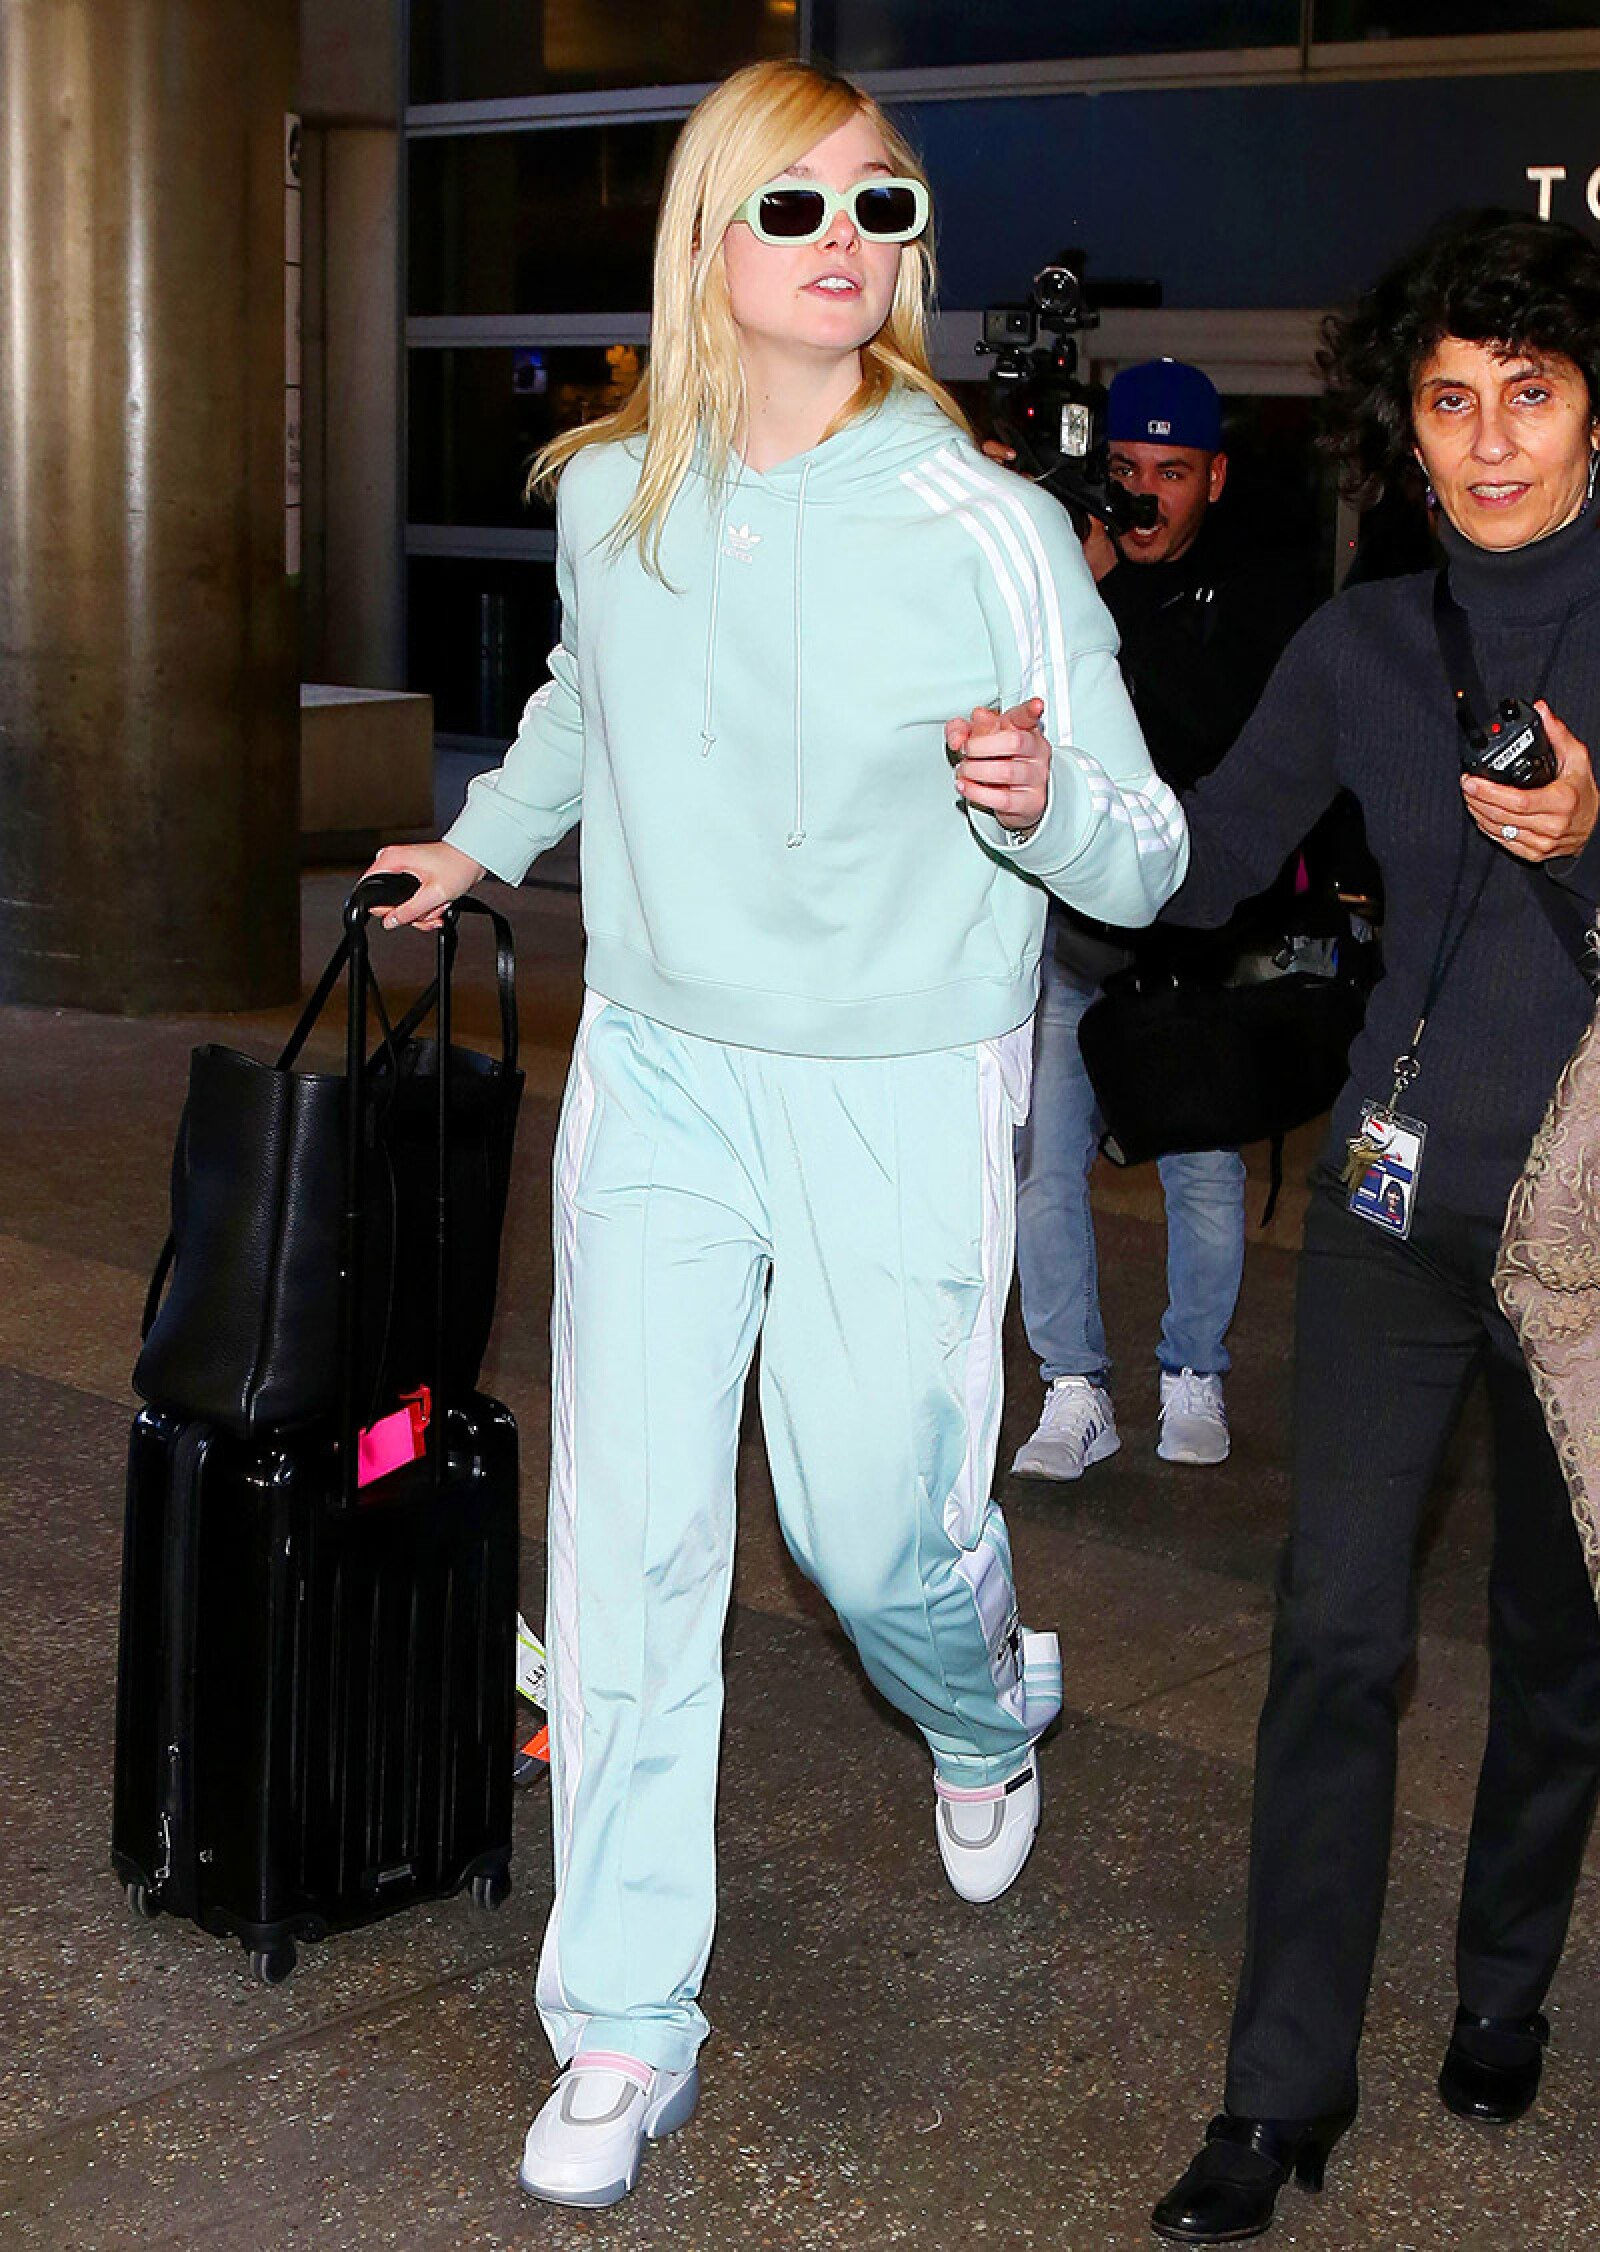 Elle Fanning at LAX International Airport, Los Angeles, USA - 21 Feb 2018